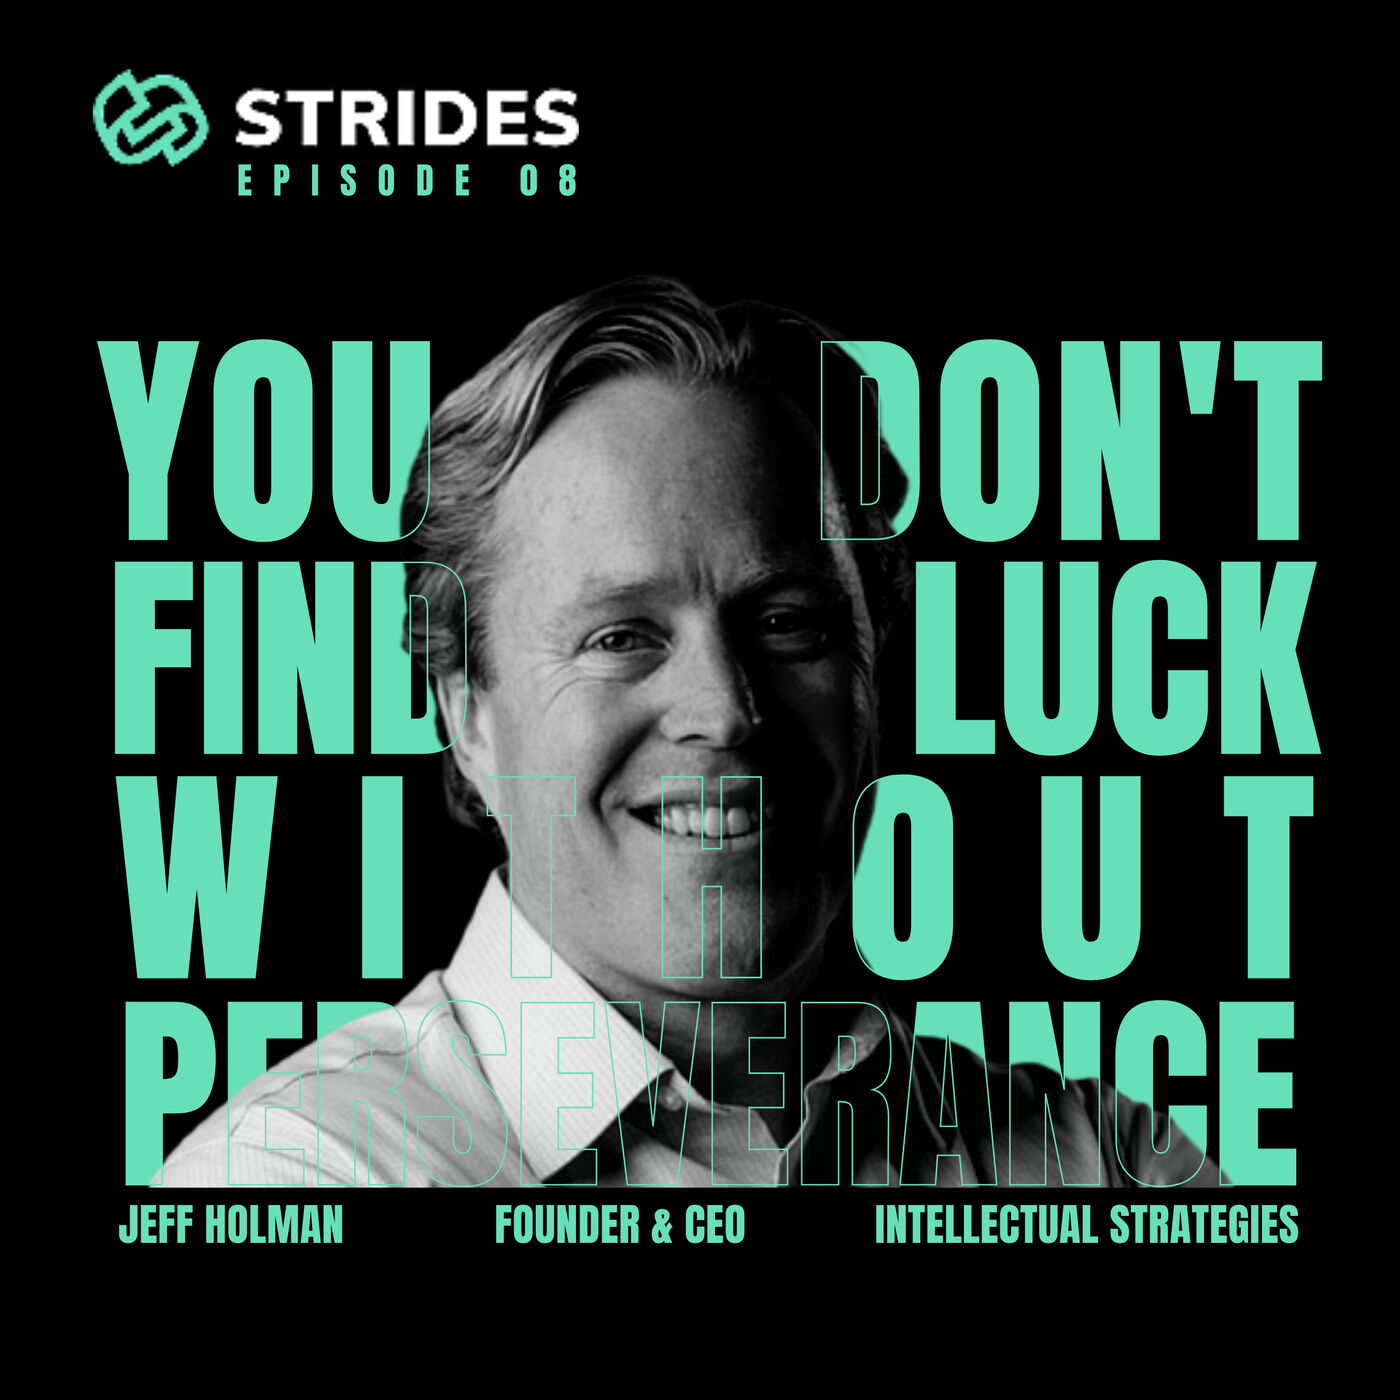 Protecting Your Ideas and Minimizing Risks with Jeff Holman (Intellectual Strategies)